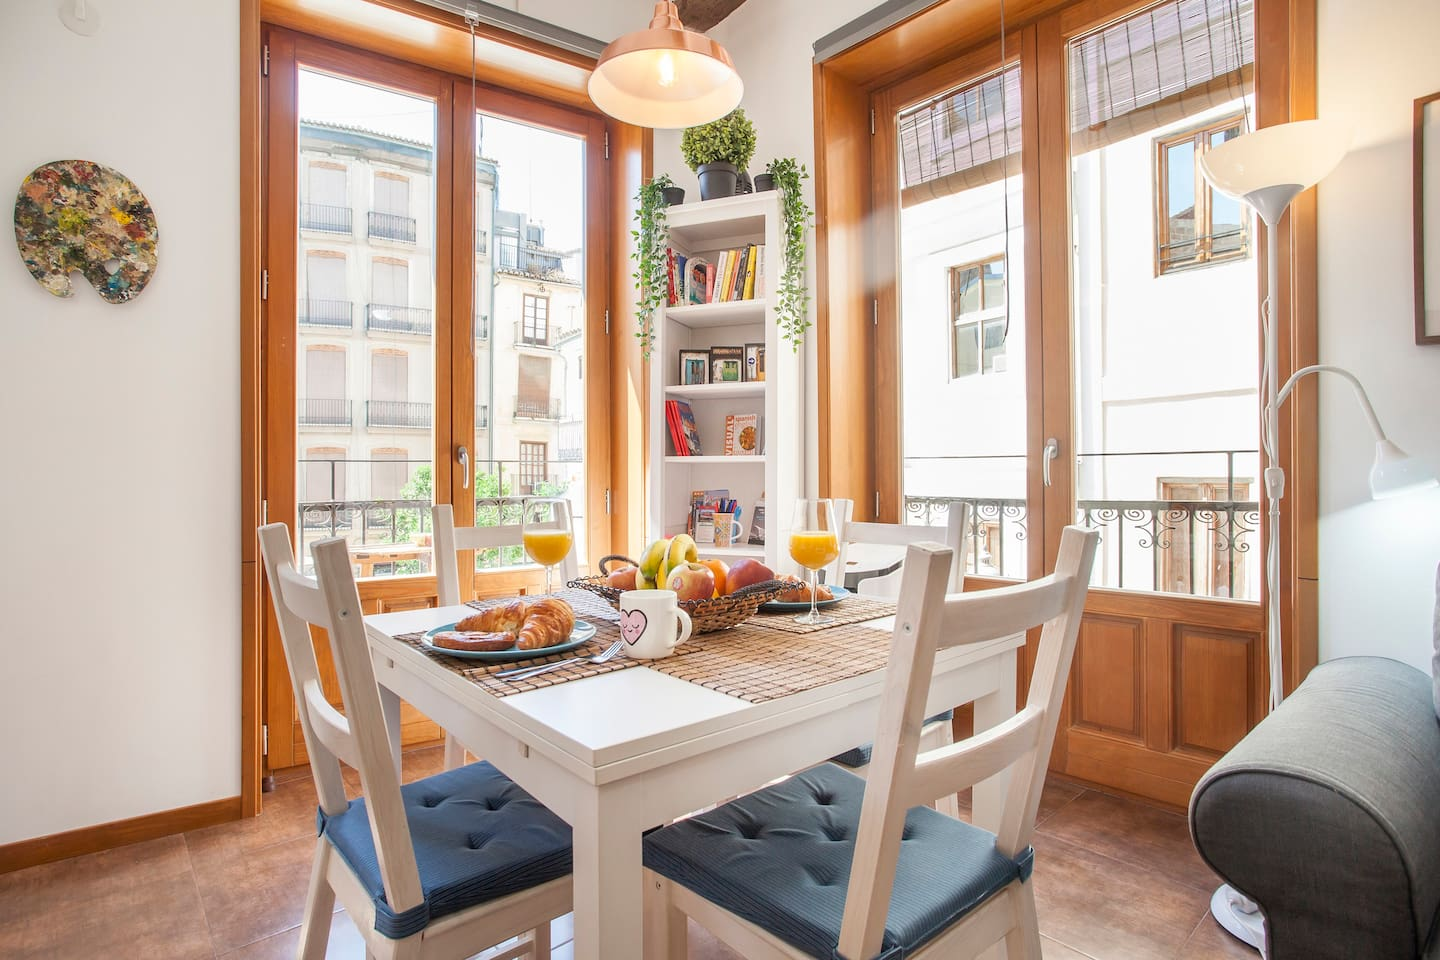 ENJOY BREAKFAST EVERY MORNING IN OUR BRIGHT, SUNNY APARTMENT!!!